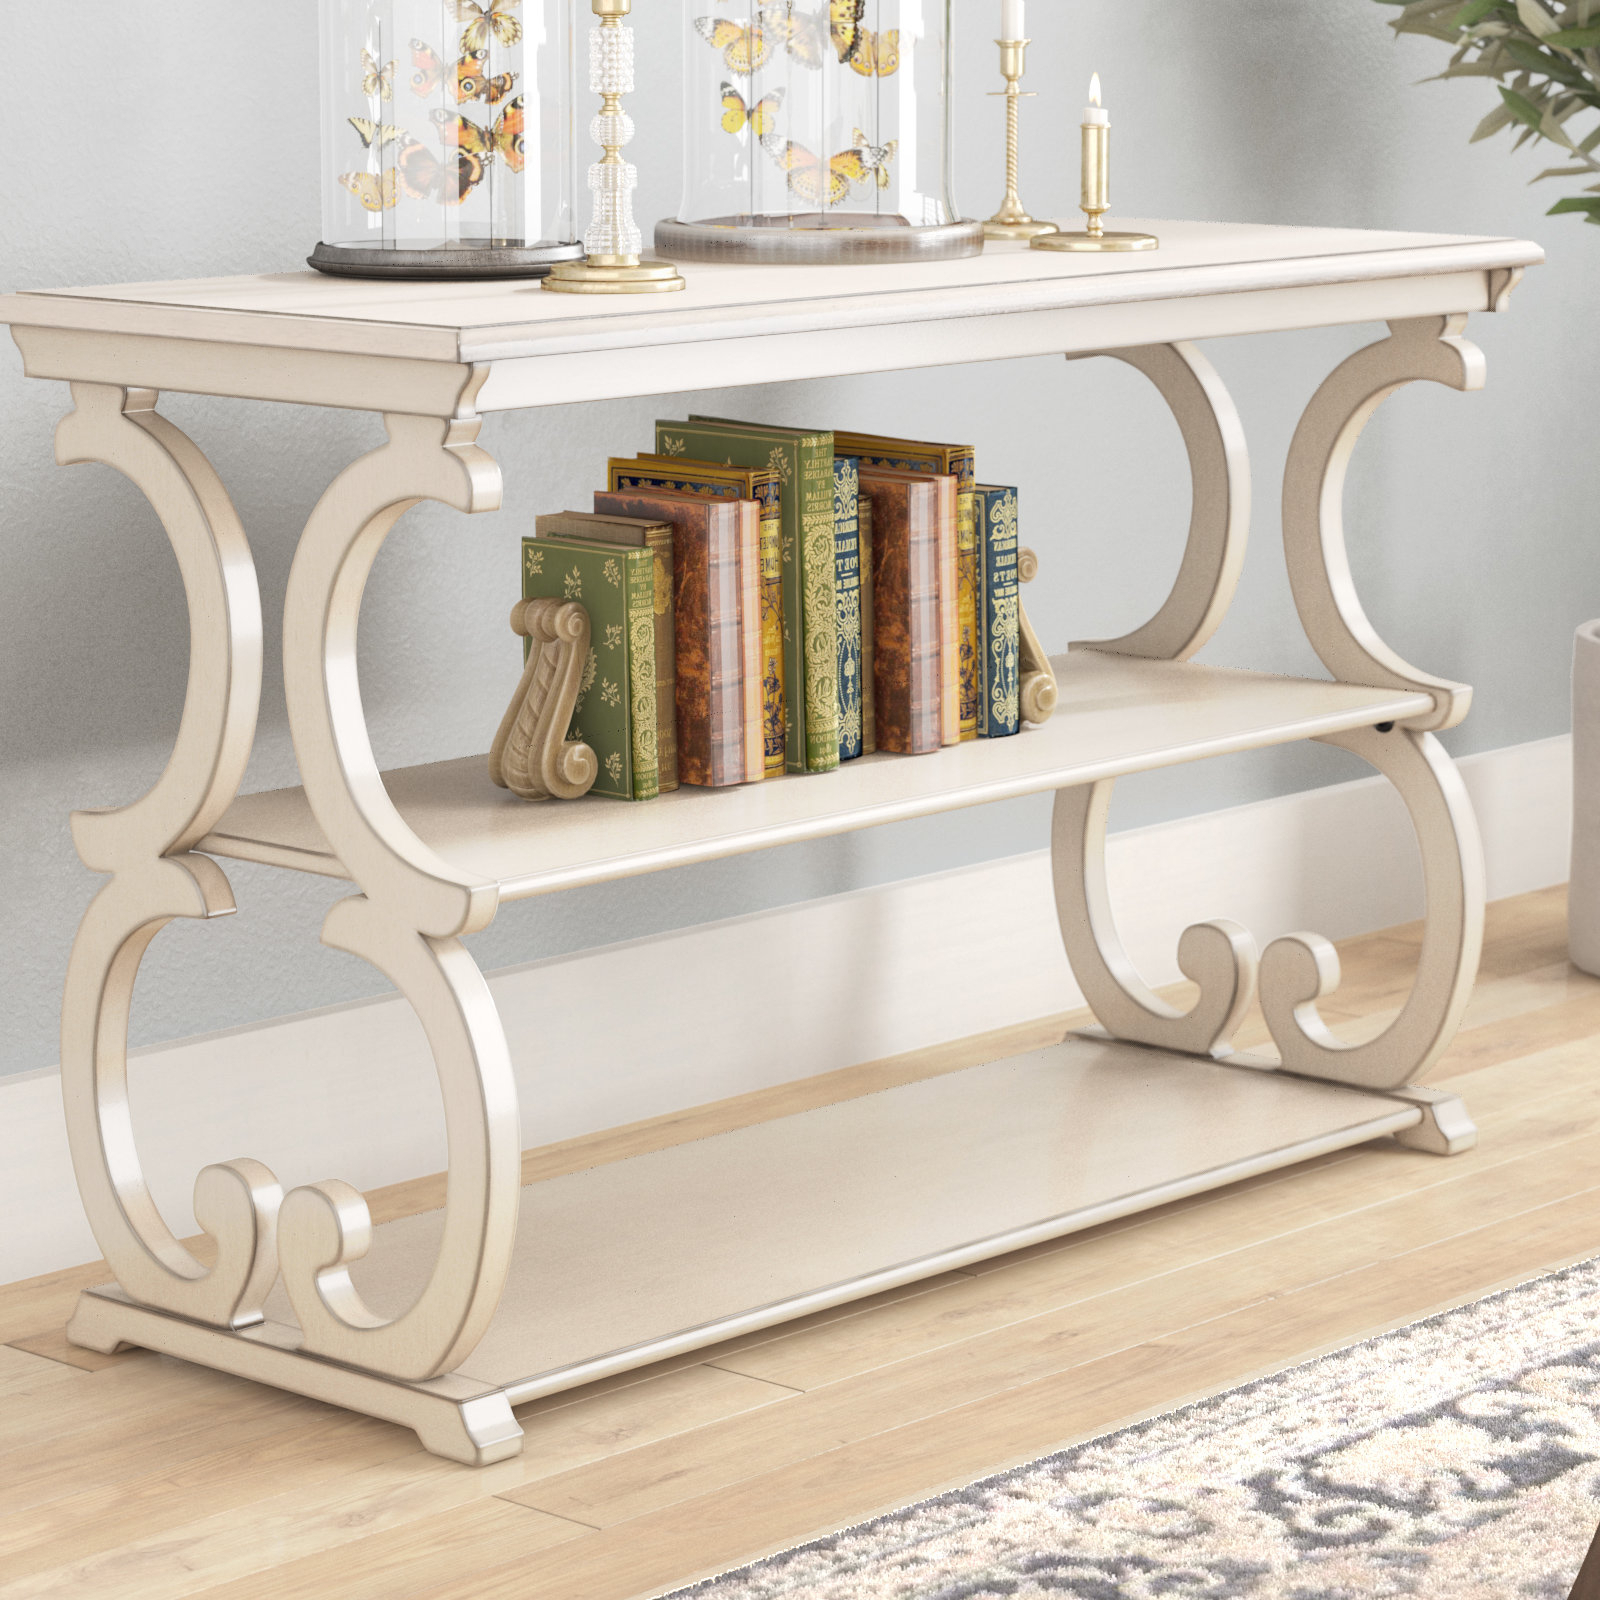 Antique White Console Table | Wayfair Pertaining To Antique White Distressed Console Tables (Gallery 7 of 20)